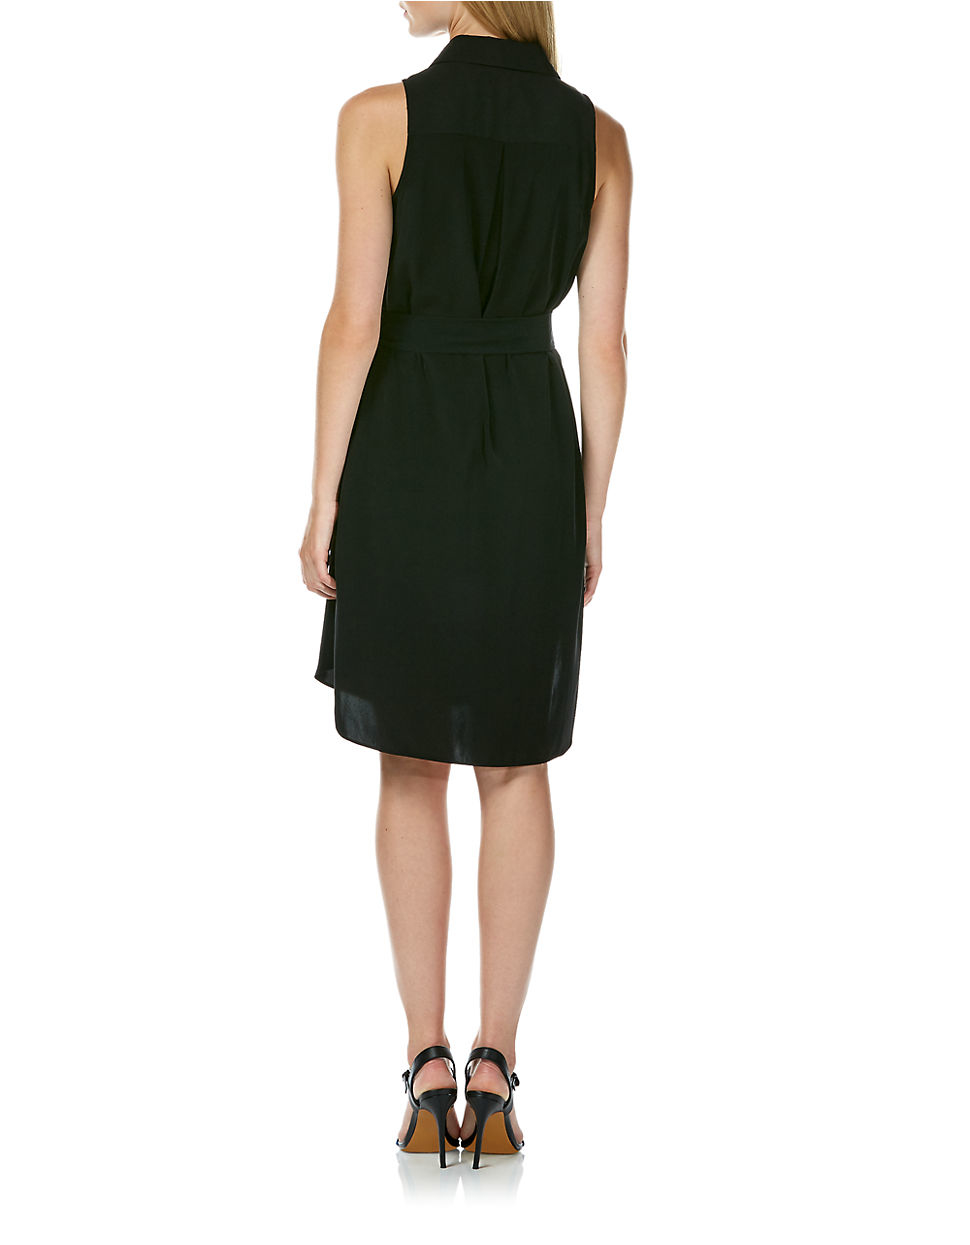 Laundry by shelli segal Sleeveless Shirt Dress in Black | Lyst